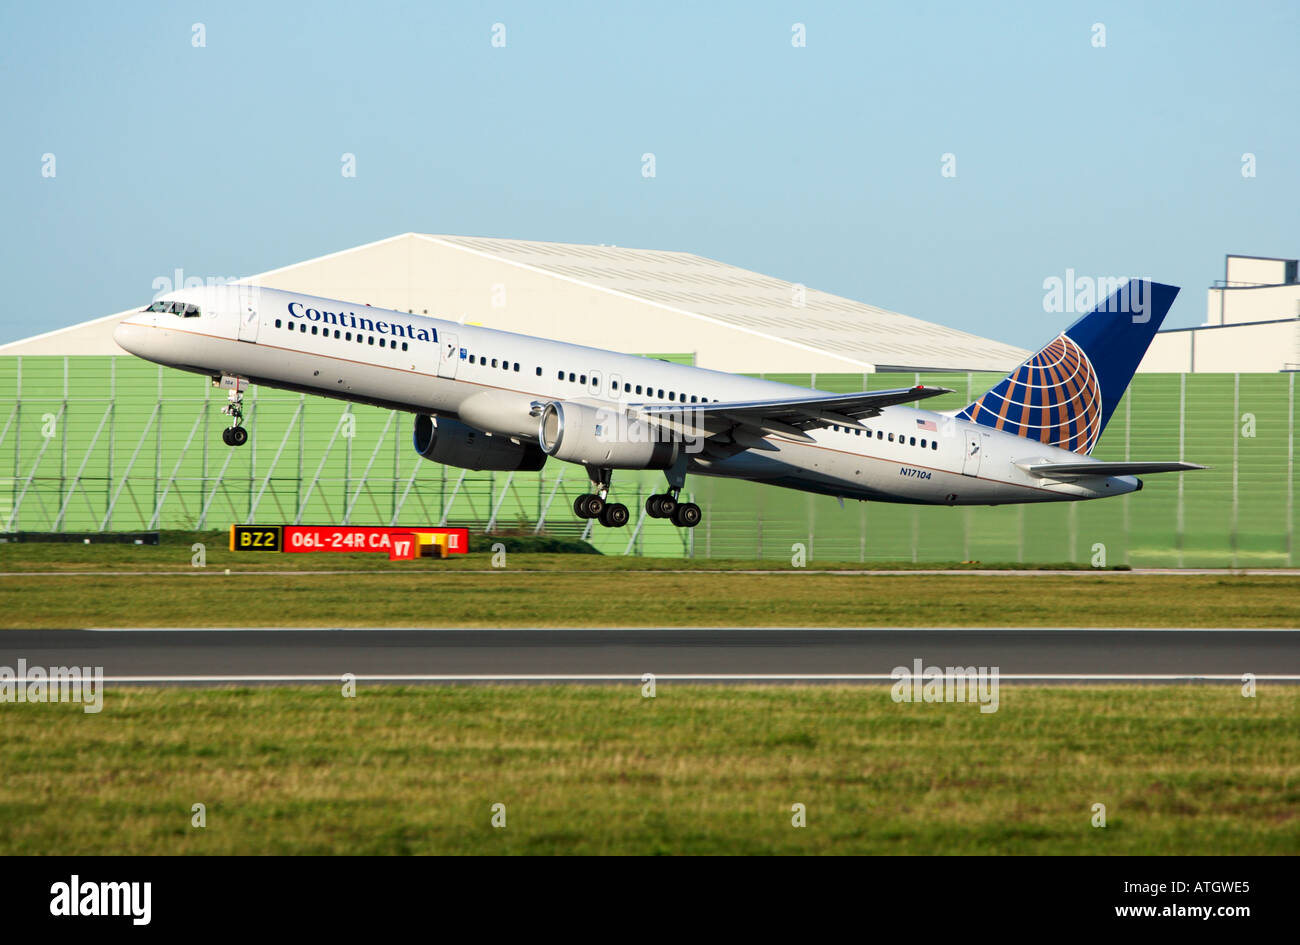 Continental Airlines at Manchester Airport infront of the atc control tower - Stock Image